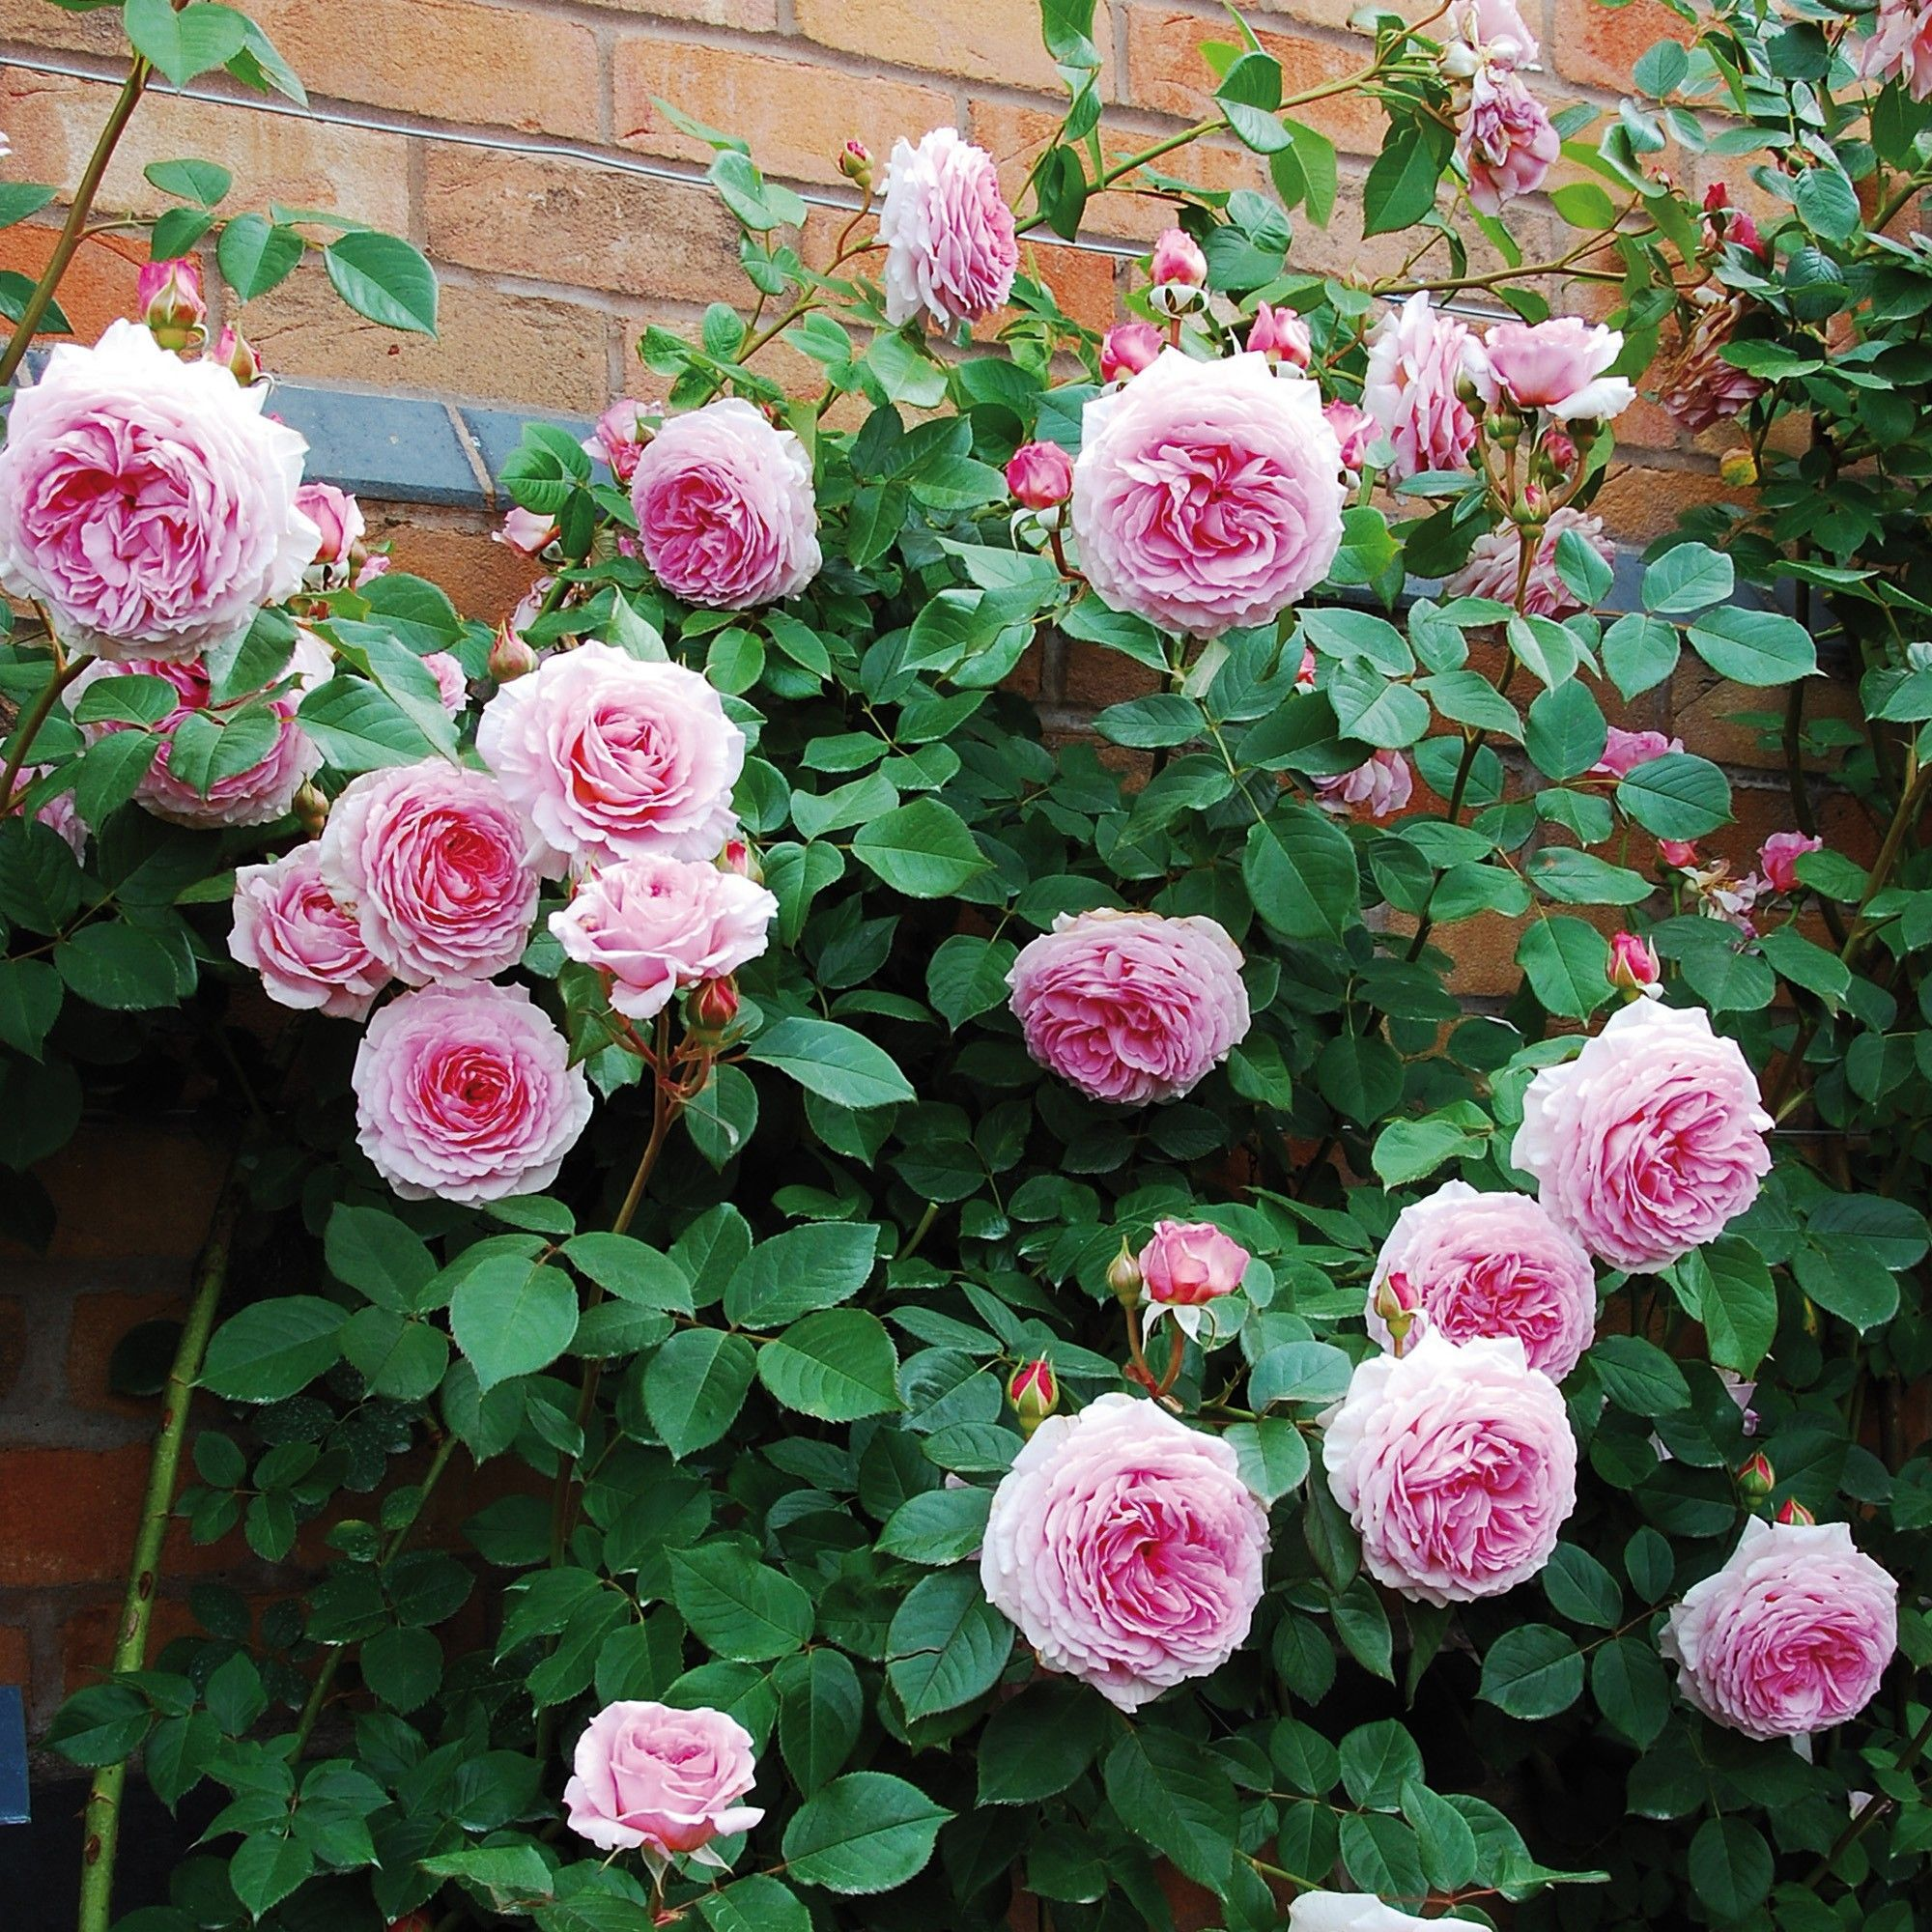 English rose gardens english rose garden seend - James Galway Ideal For Shade Repeat Flowering Disease Resistant Fragrant Find This Pin And More On Garden By Isani5842 James Galway English Rose